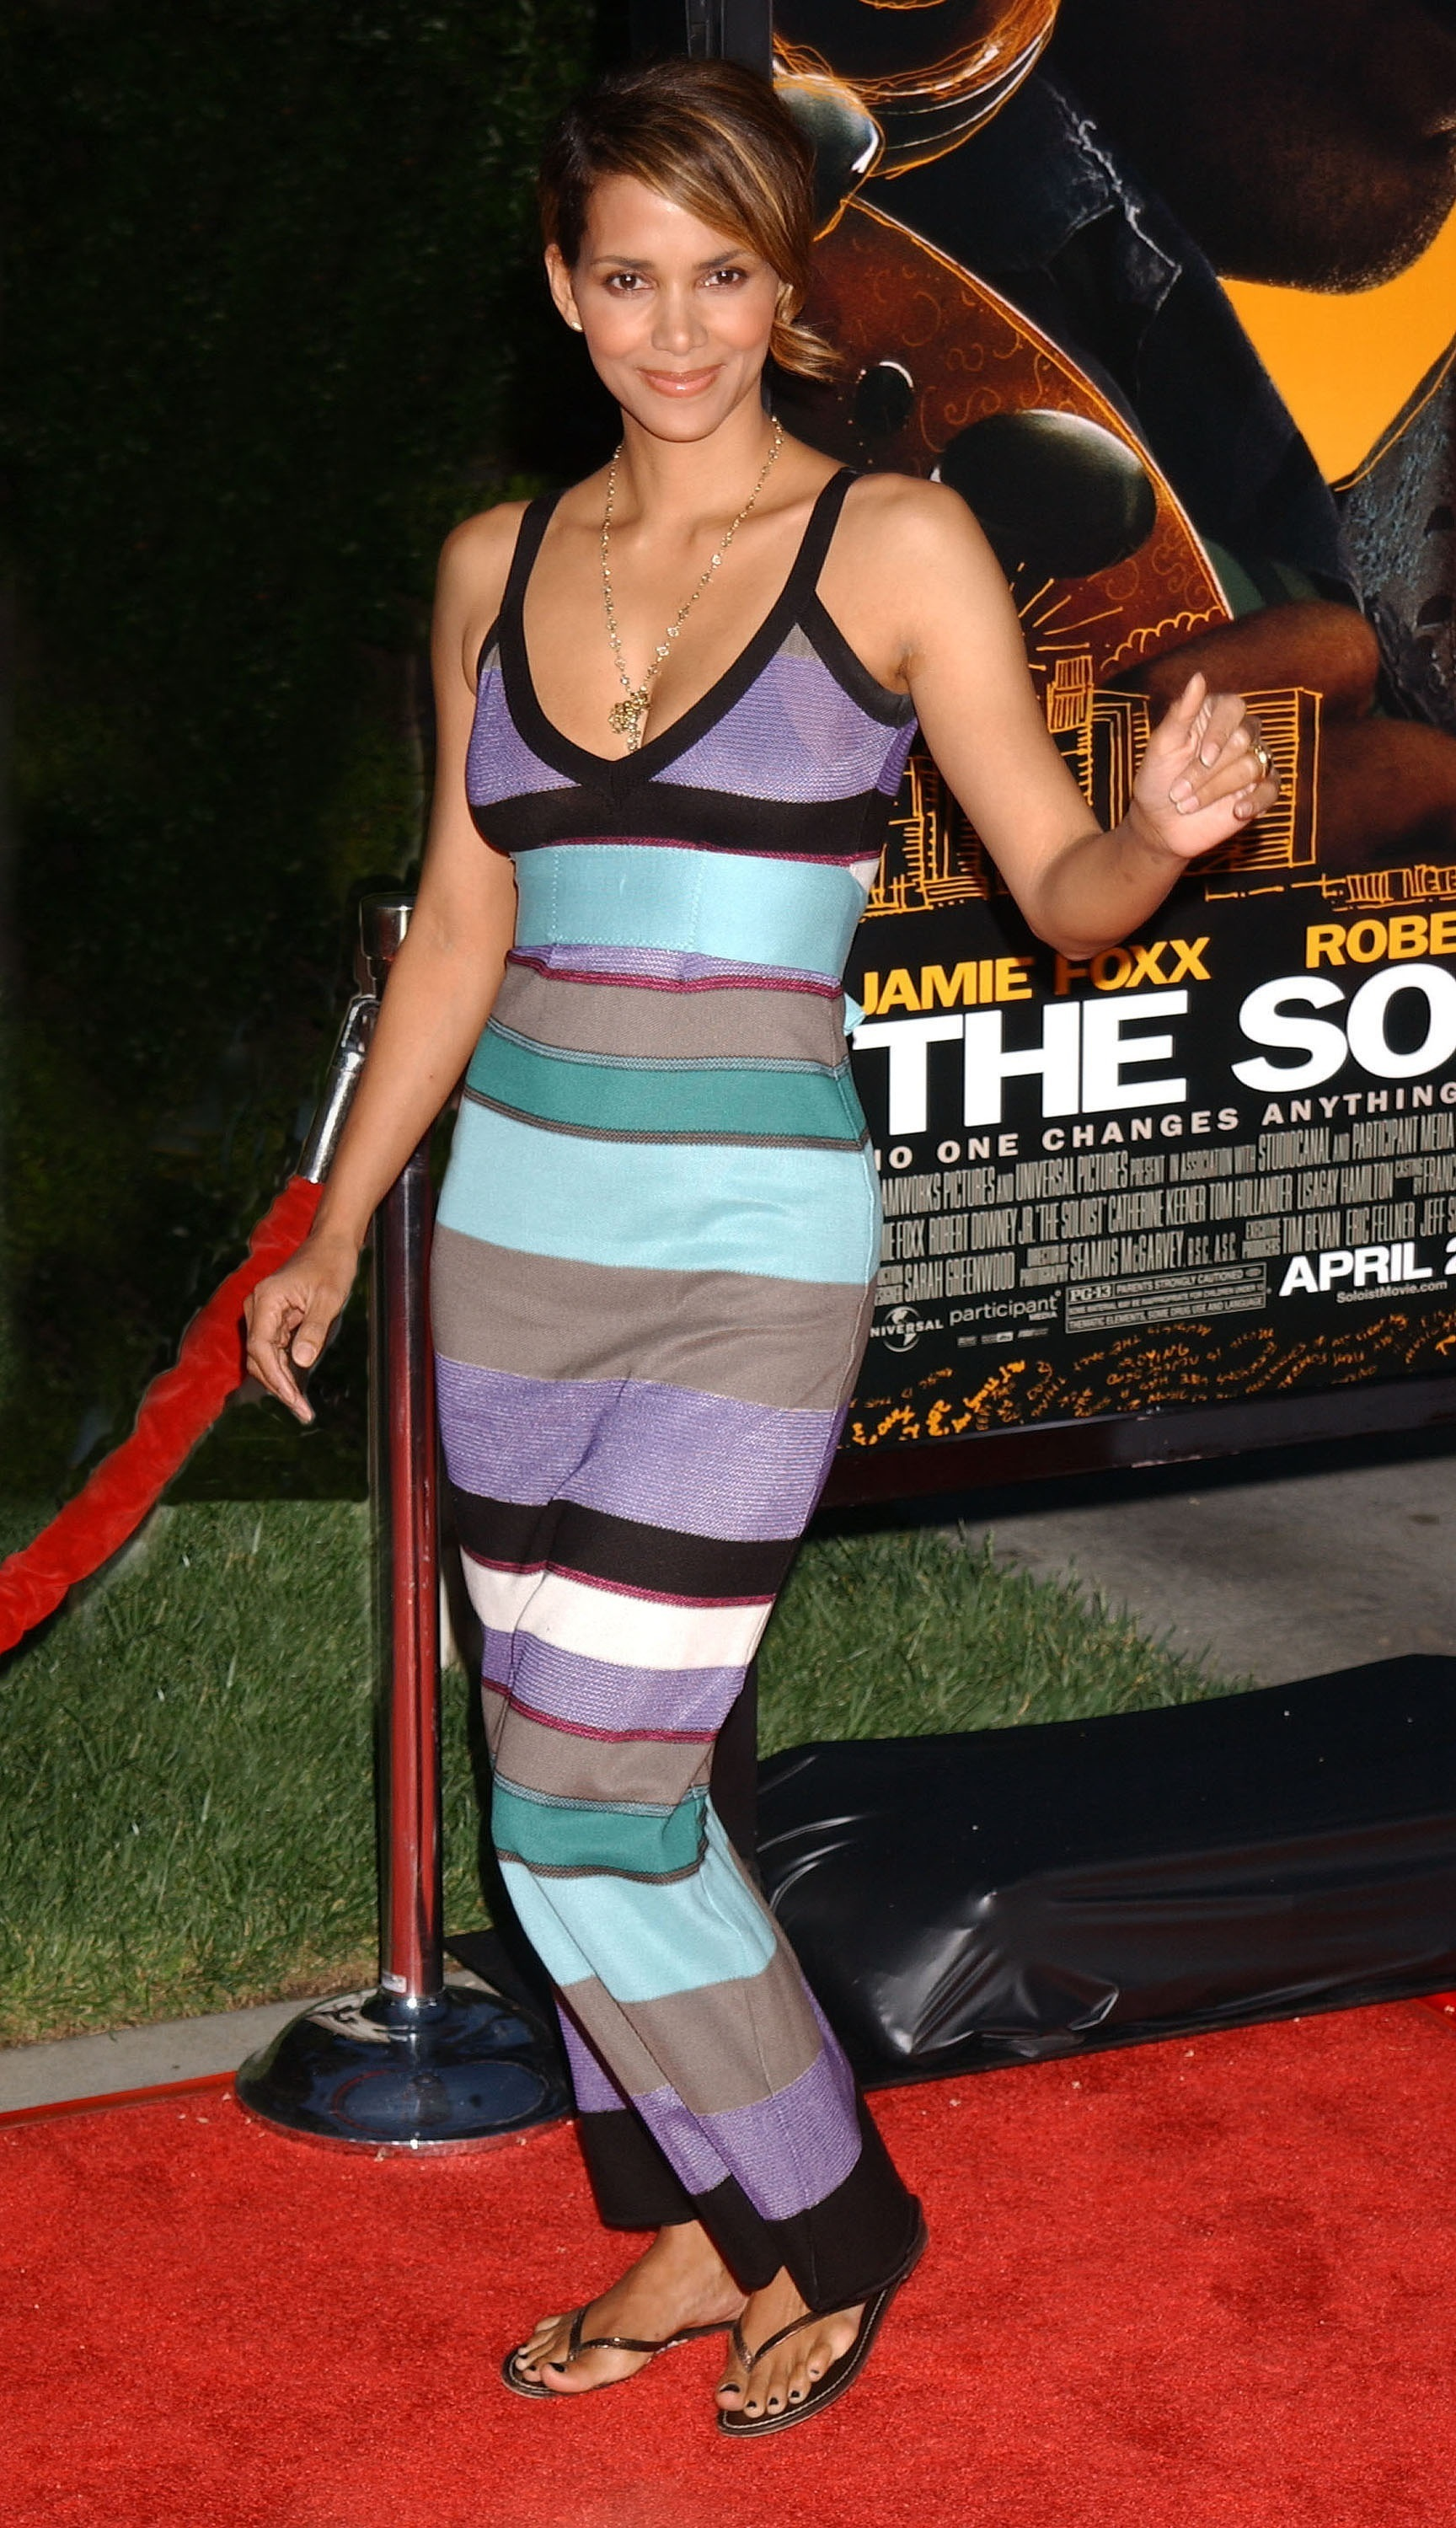 68697_Halle_Berry_The_Soloist_premiere_in_Los_Angeles_47_122_907lo.jpg